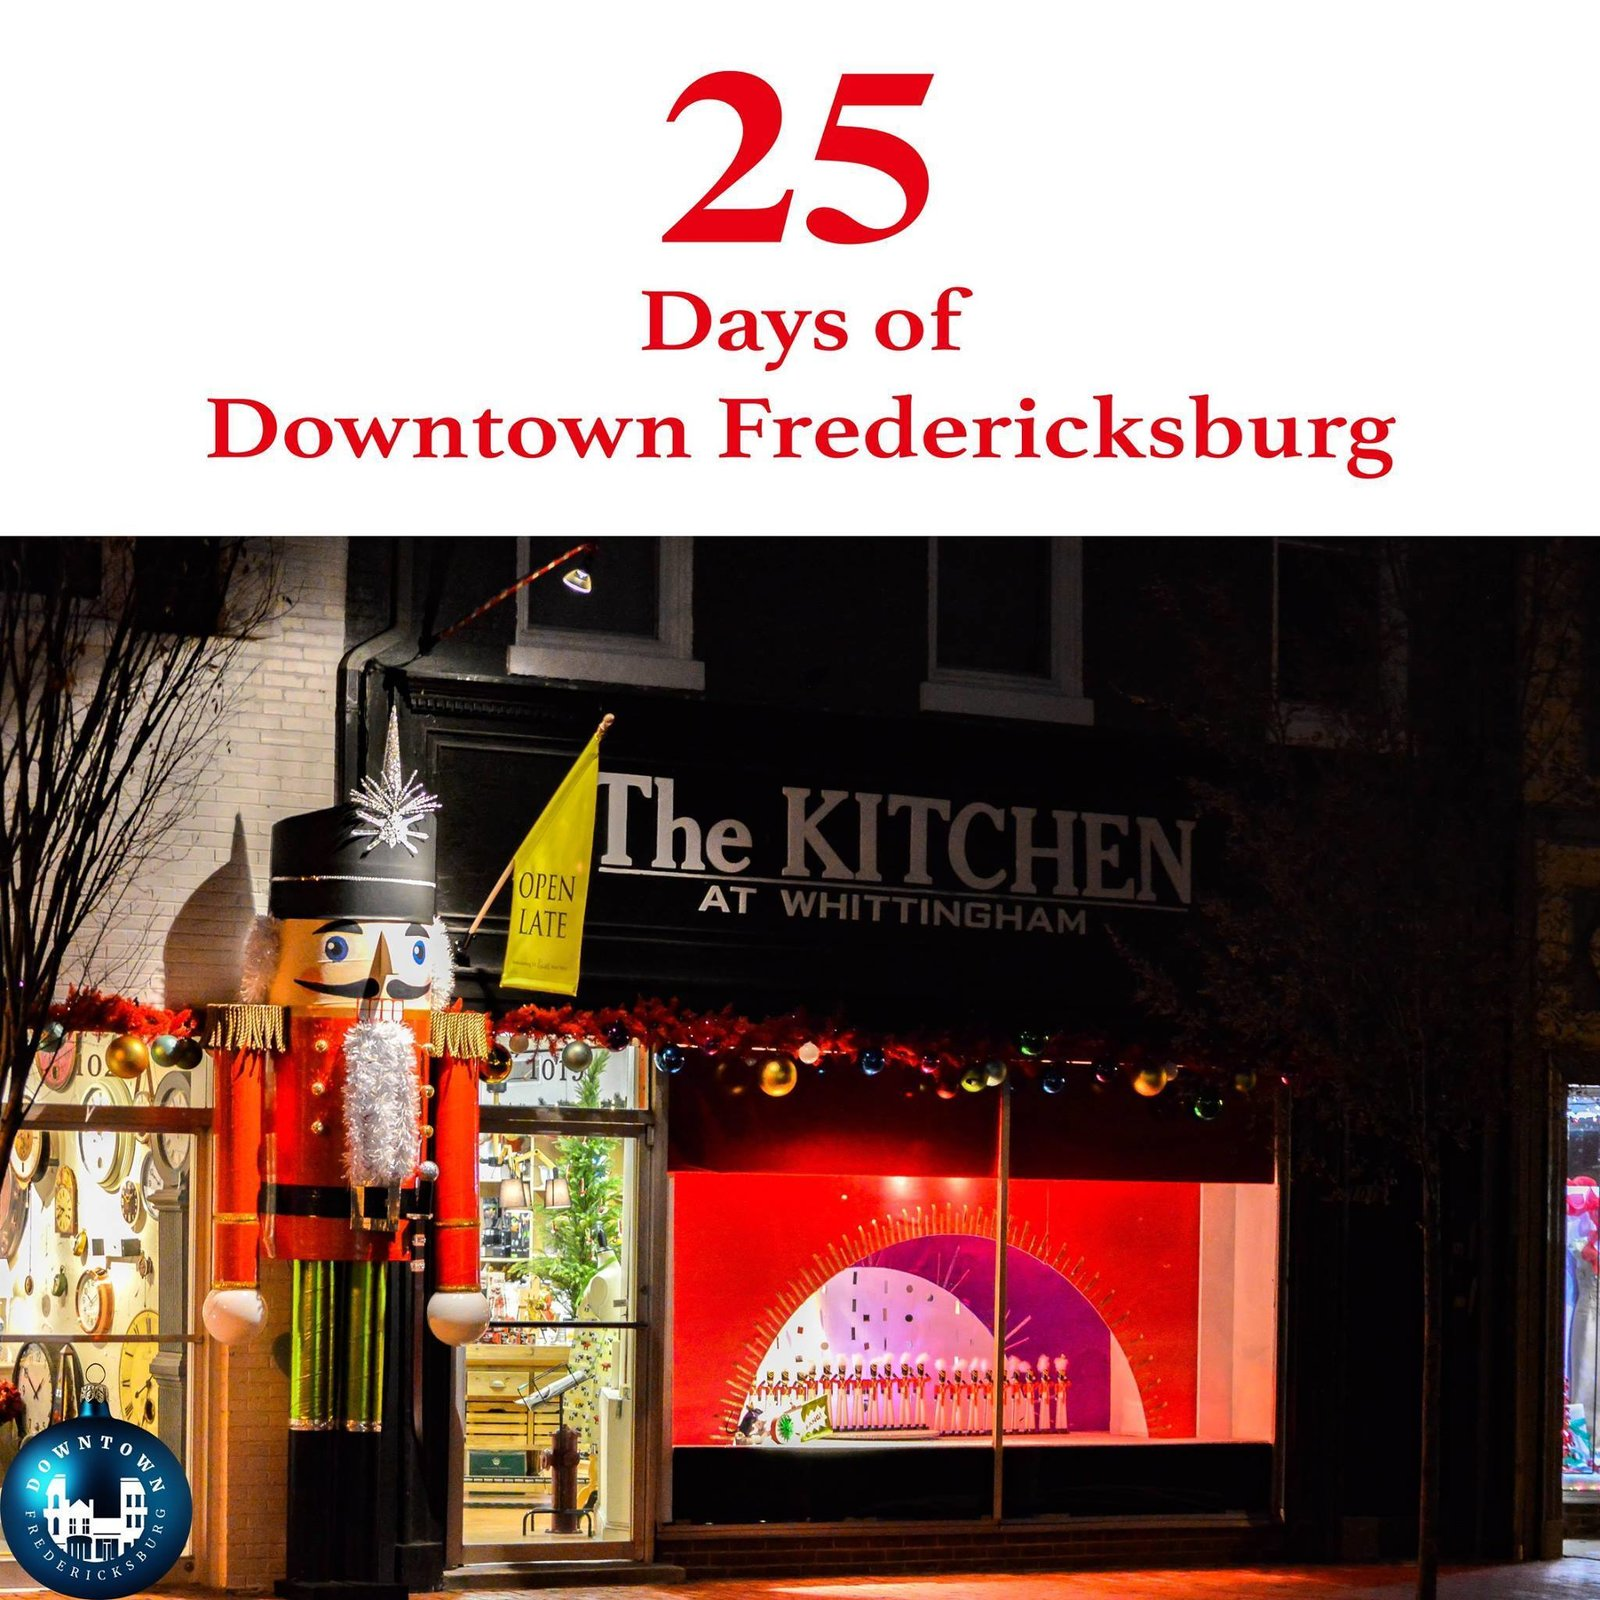 Gift Twenty-two A giant nutcracker, dancing ballerinas, and all the Christmas glassware and cookware you may need to make your holiday feast can be found at Whittingham. https://www.facebook.com/DowntownFredericksburg/  25 Days of Downtown Fredericksburg by Downtown Fredericksburg